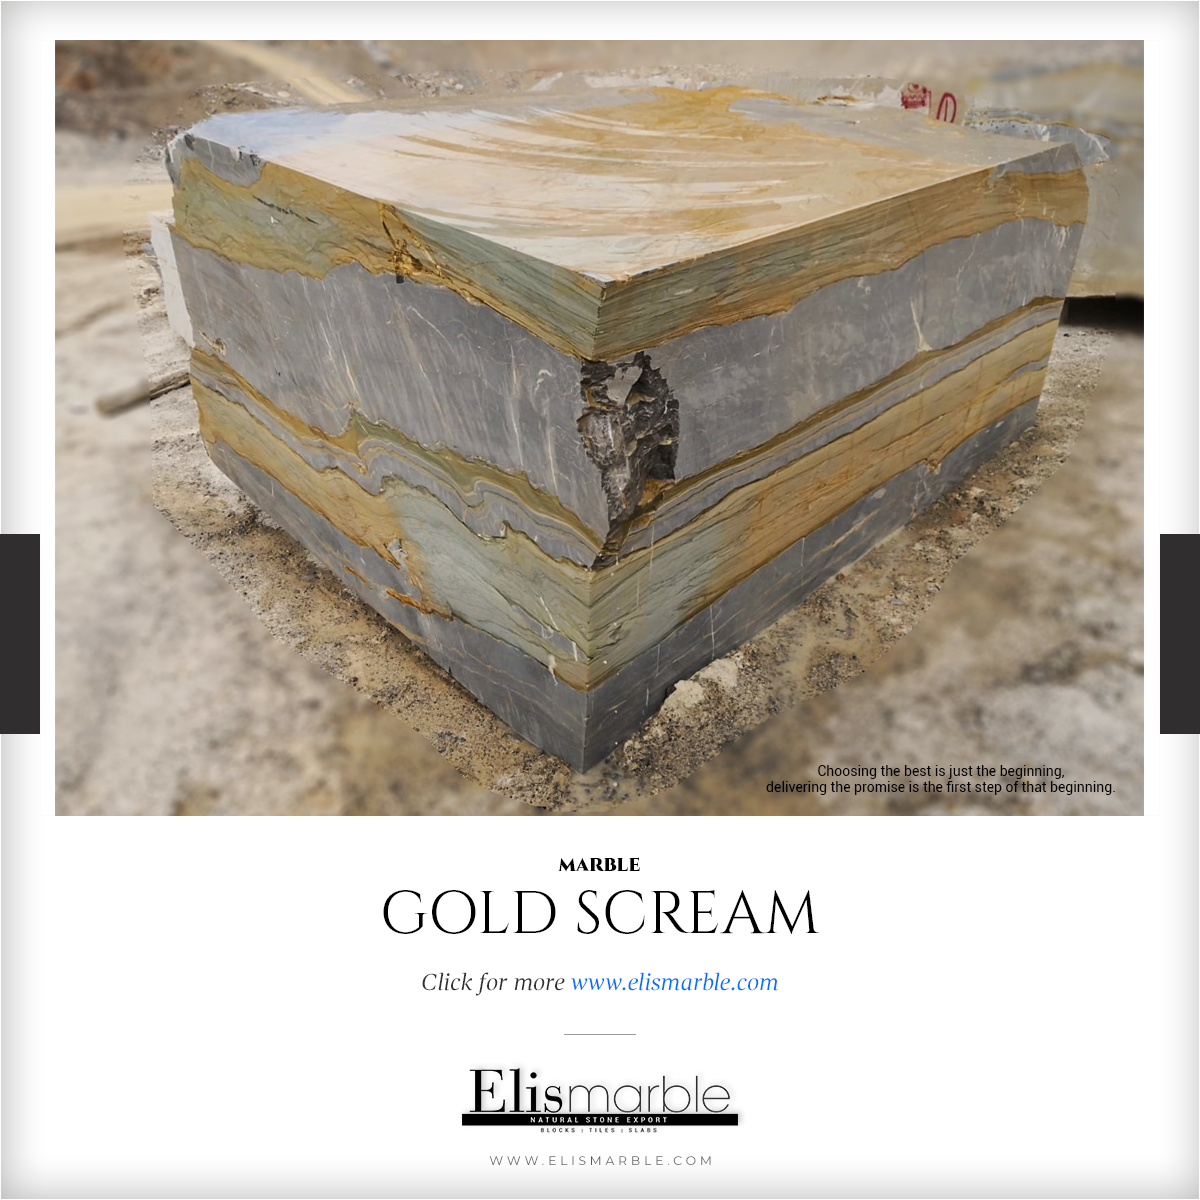 Gold Scream